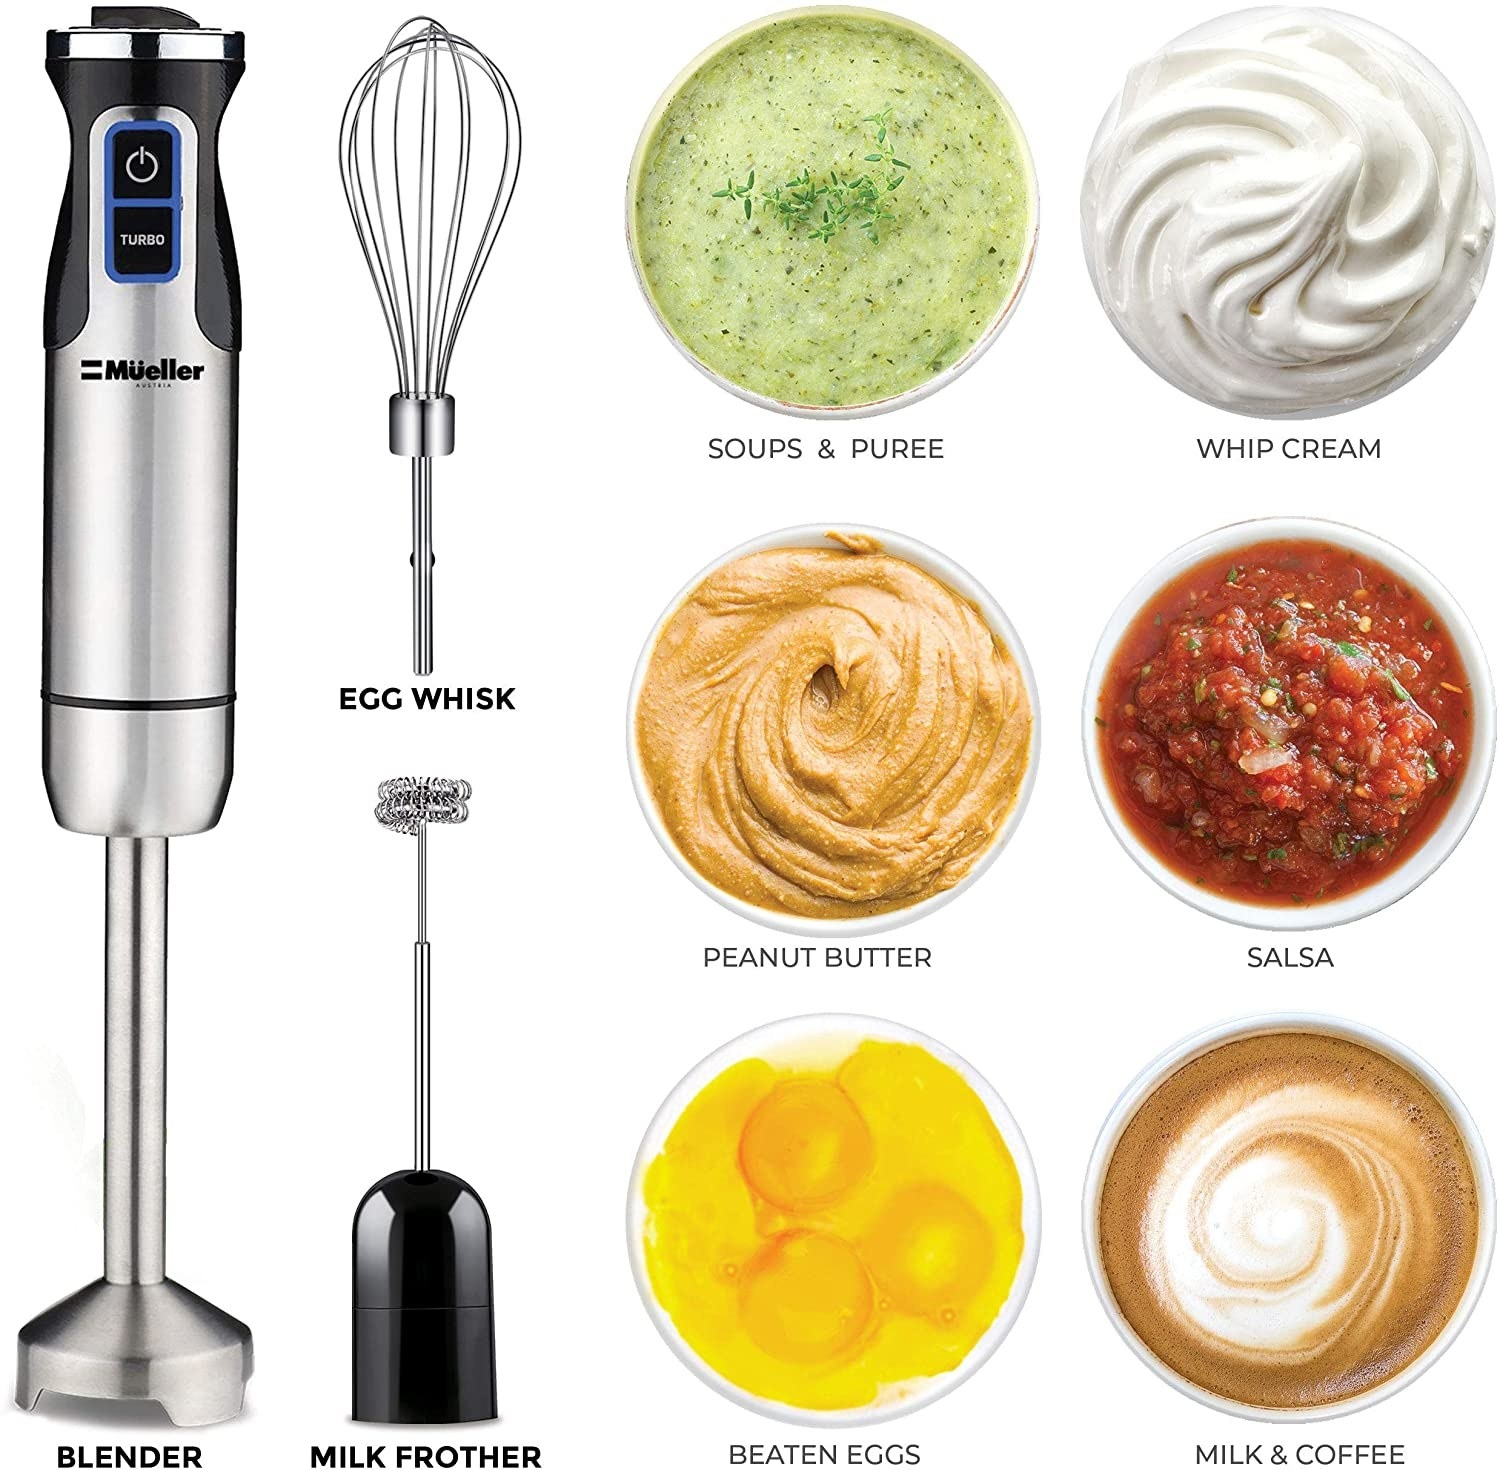 The blender, milk frother, and egg whisk can beat eggs, make milk/coffee, salsa, whip cream, and soups/puree